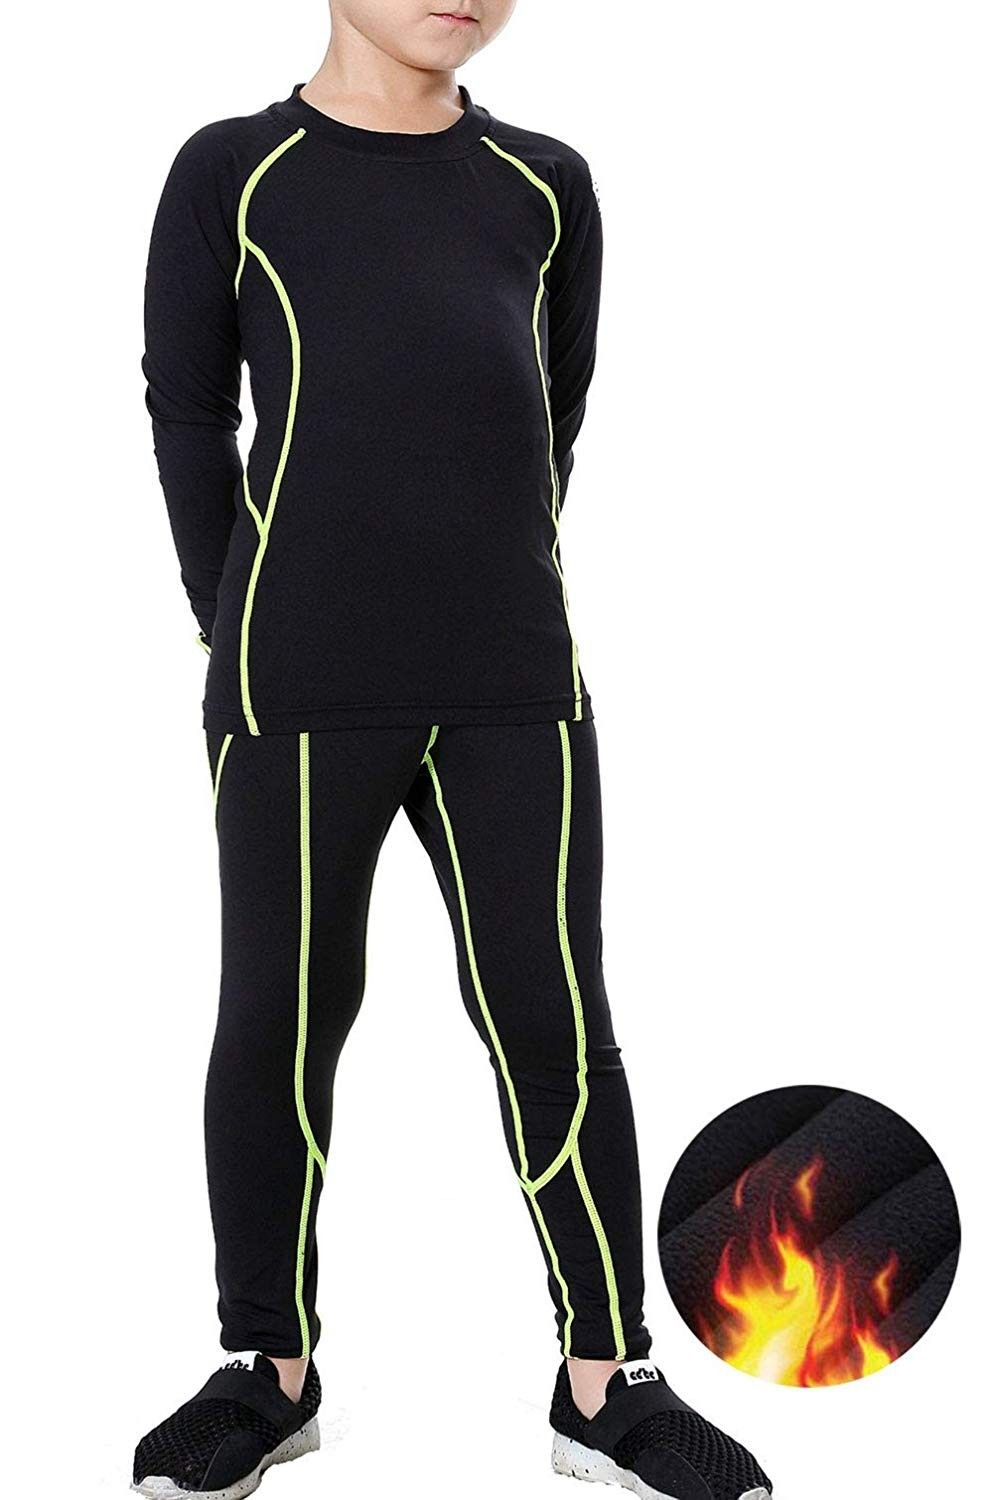 Arctic Hero Boys 2-Piece Thermal Warm Underwear Top and Pant Set